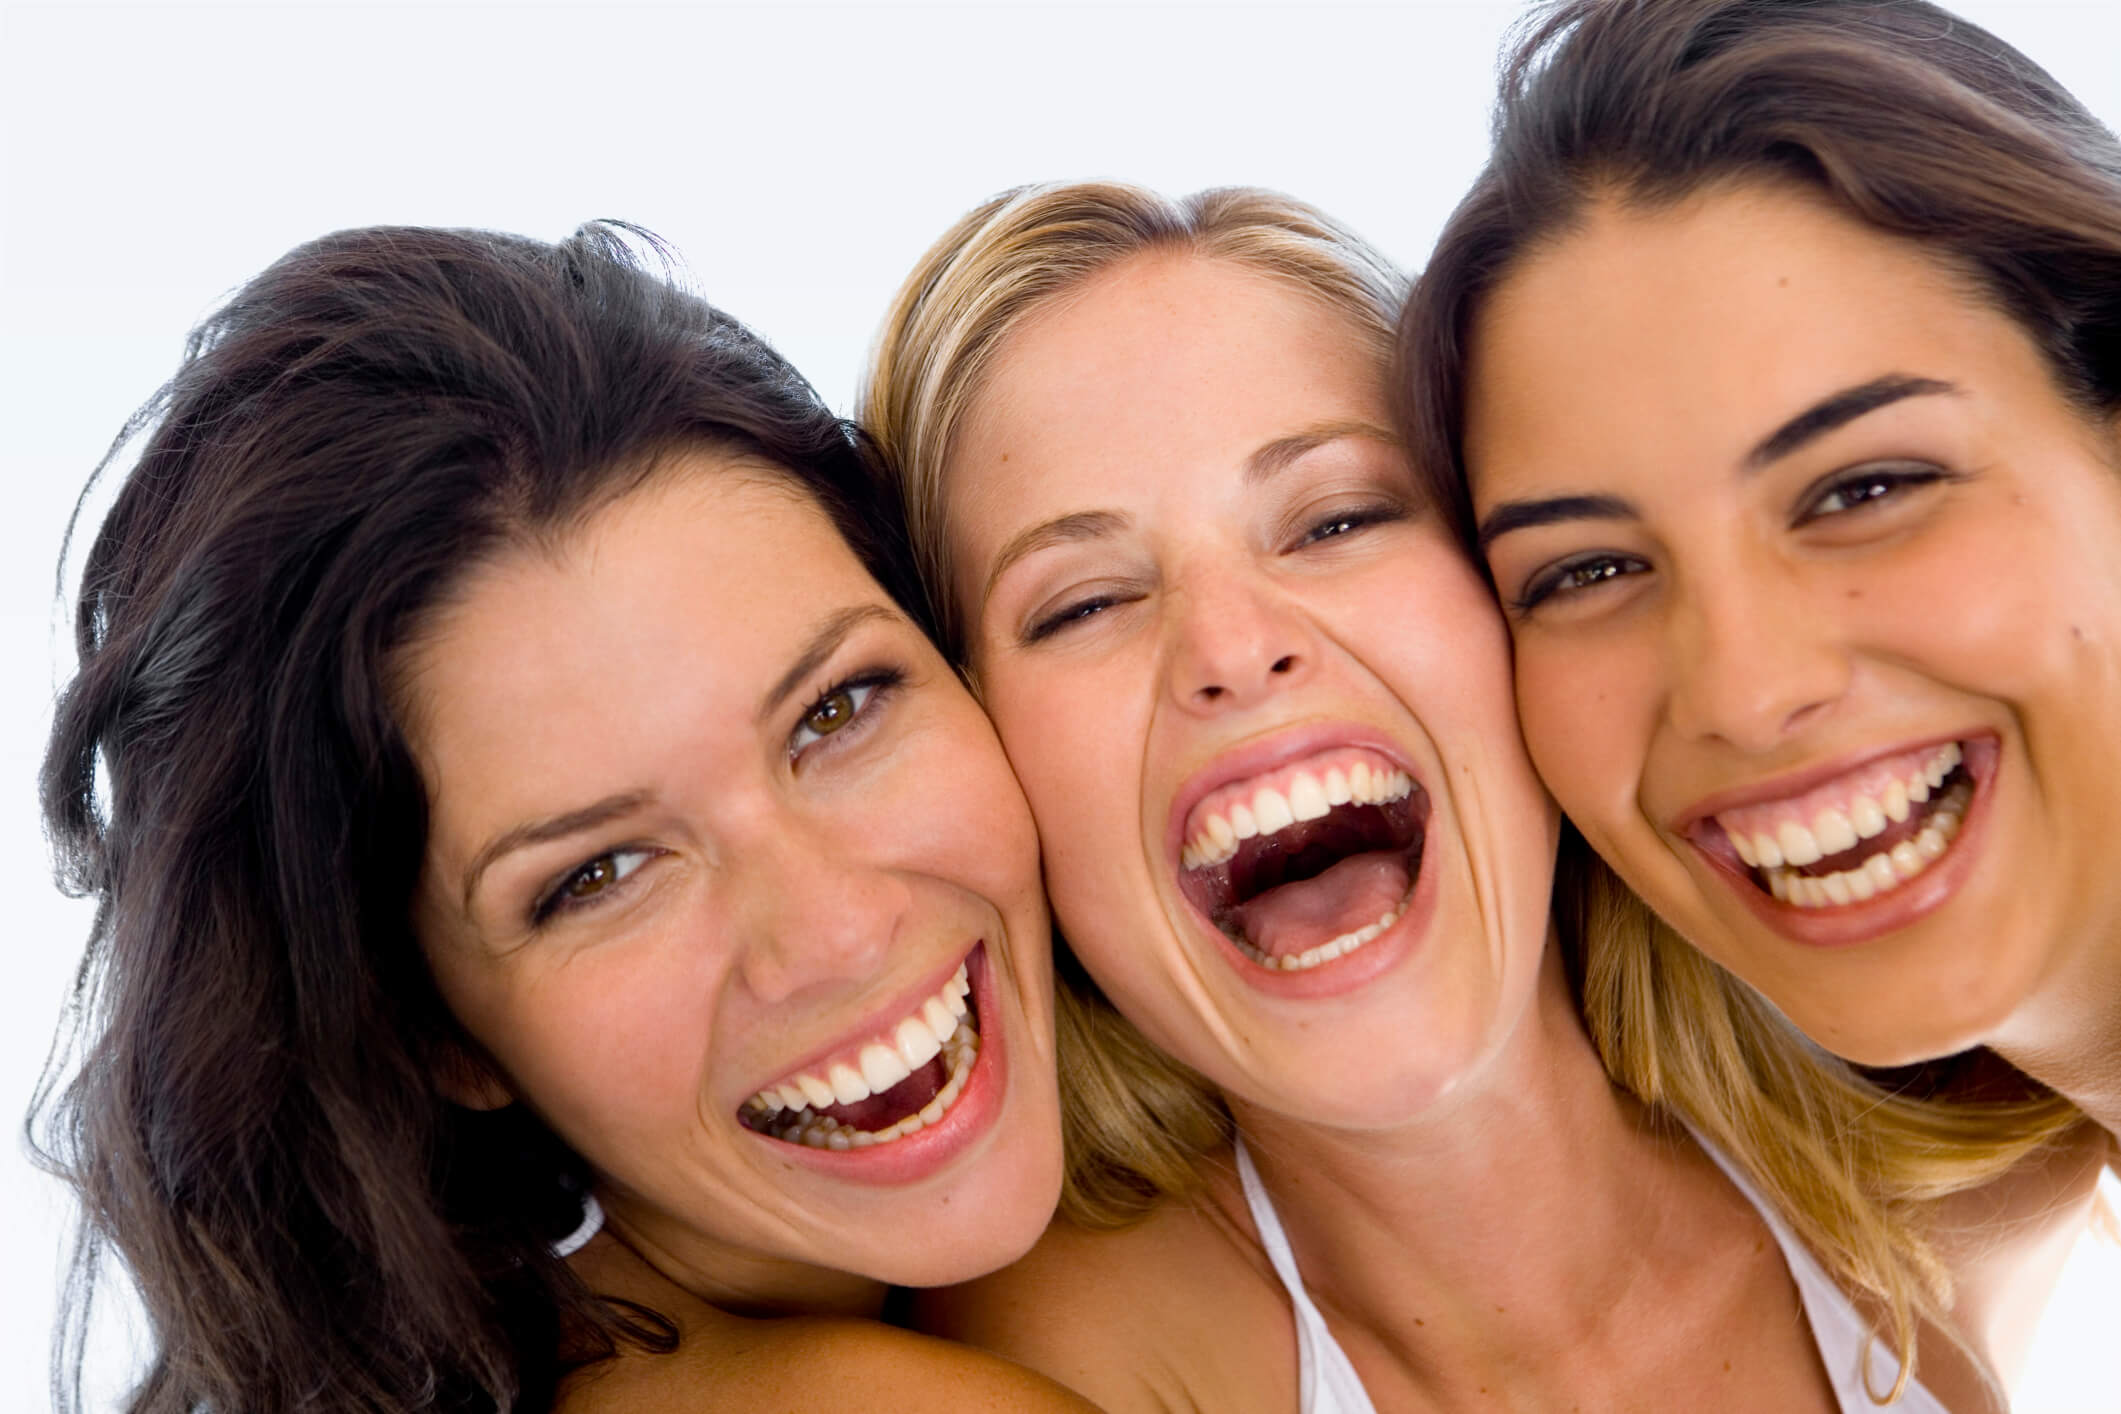 10 THINGS THAT ACTUALLY RUIN YOUR SMILE